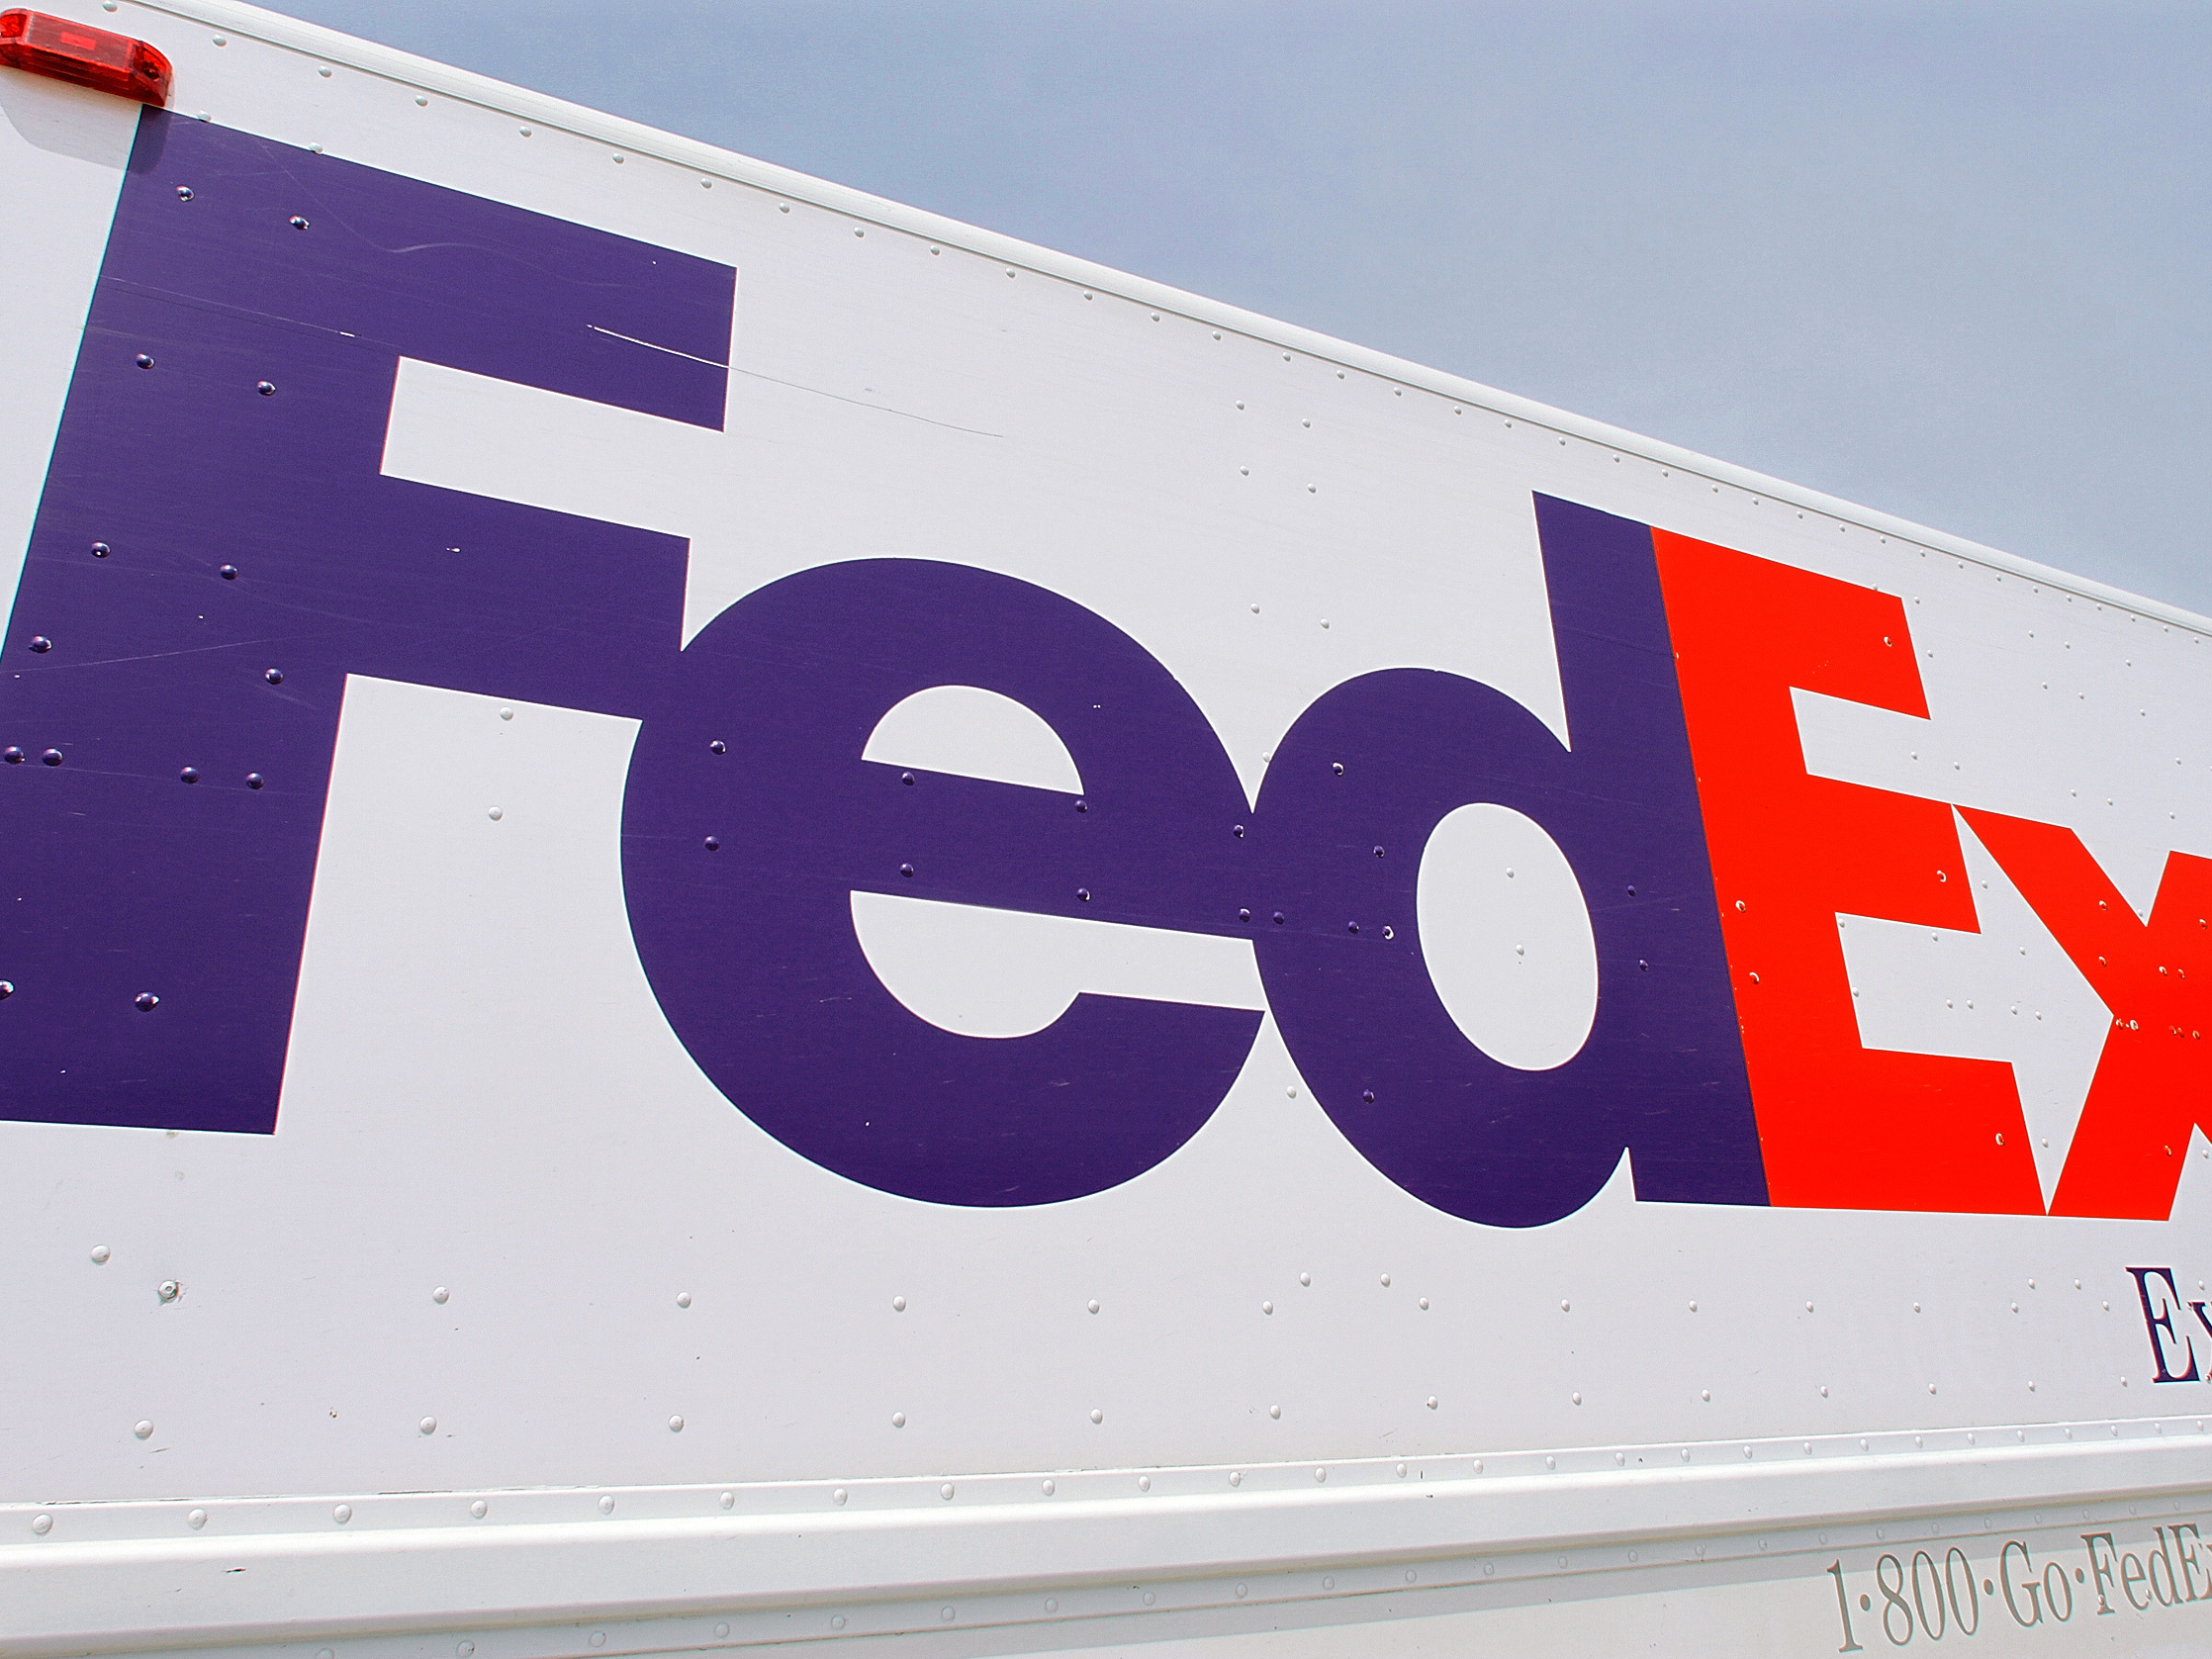 Indianapolis FedEx facility shooting leaves 8 dead, attacker's identity unknown